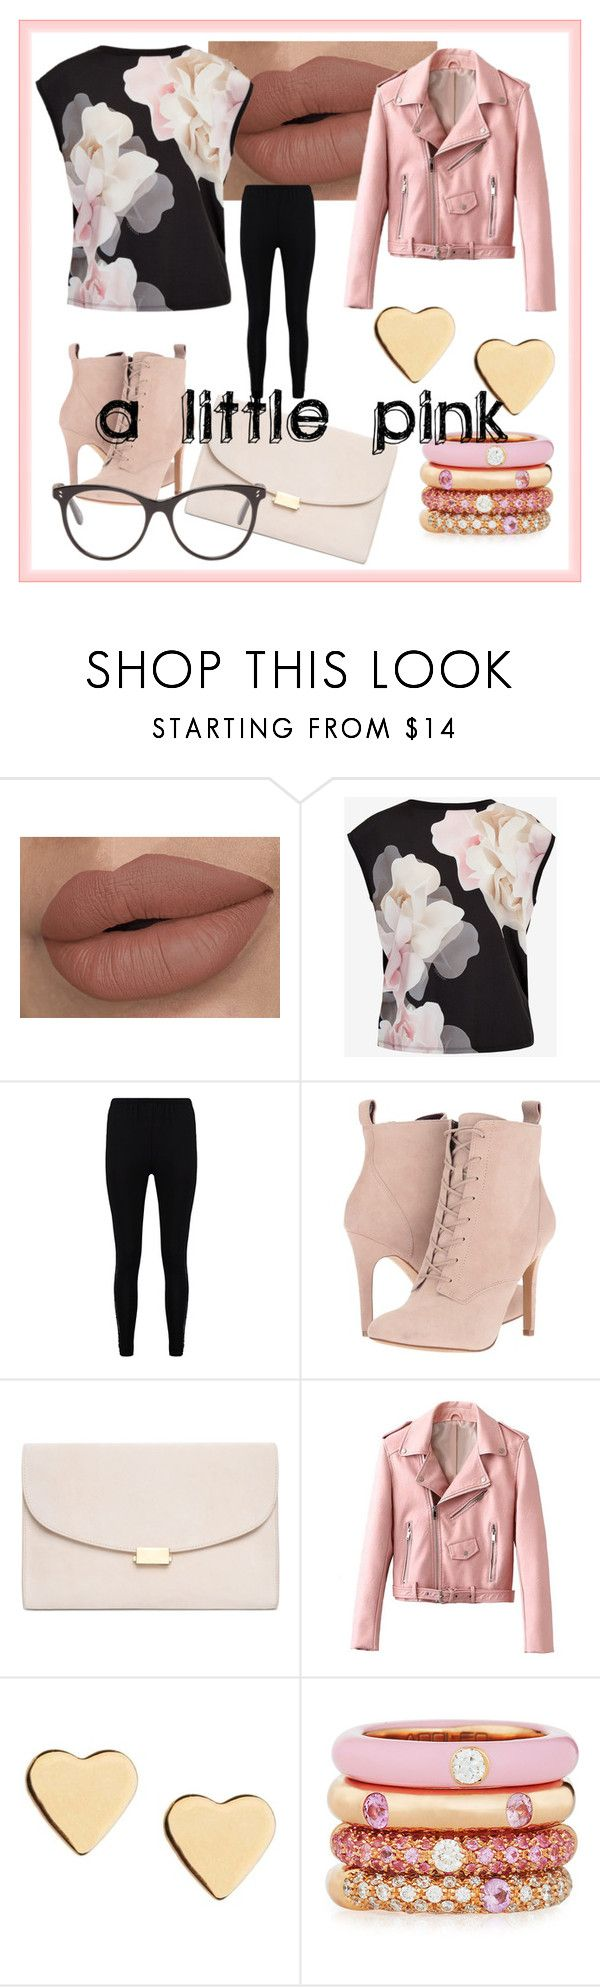 """Untitled #216"" by frupapp on Polyvore featuring Ted Baker, Boohoo, BCBGeneration, Mansur Gavriel, Lipsy, Adolfo Courrier, STELLA McCARTNEY and school"